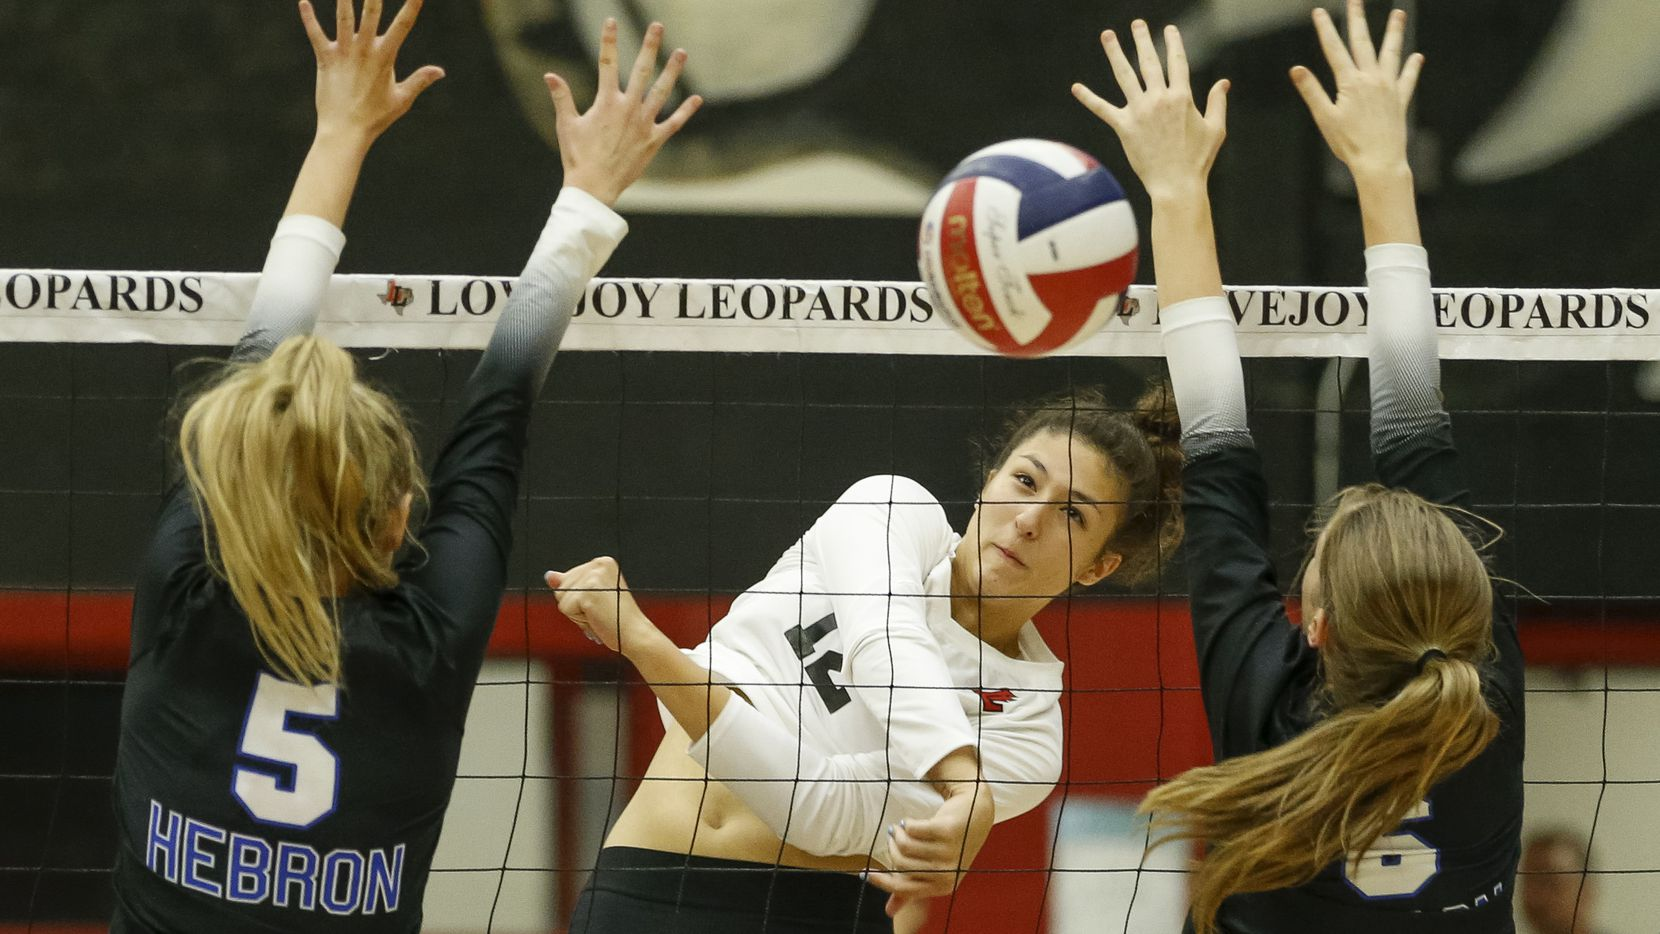 Lovejoy's Hannah Gonzalez (12) spikes the ball between Hebron's Hannah Redrow (5) and Sophie Hoke (6) during Lovejoy's 25-13, 25-11, 25-16 win Tuesday. Lovejoy is No. 2 in this week's Class 5A-others area rankings, and Hebron is ranked No. 7 in 6A. (Elias Valverde II/The Dallas Morning News)